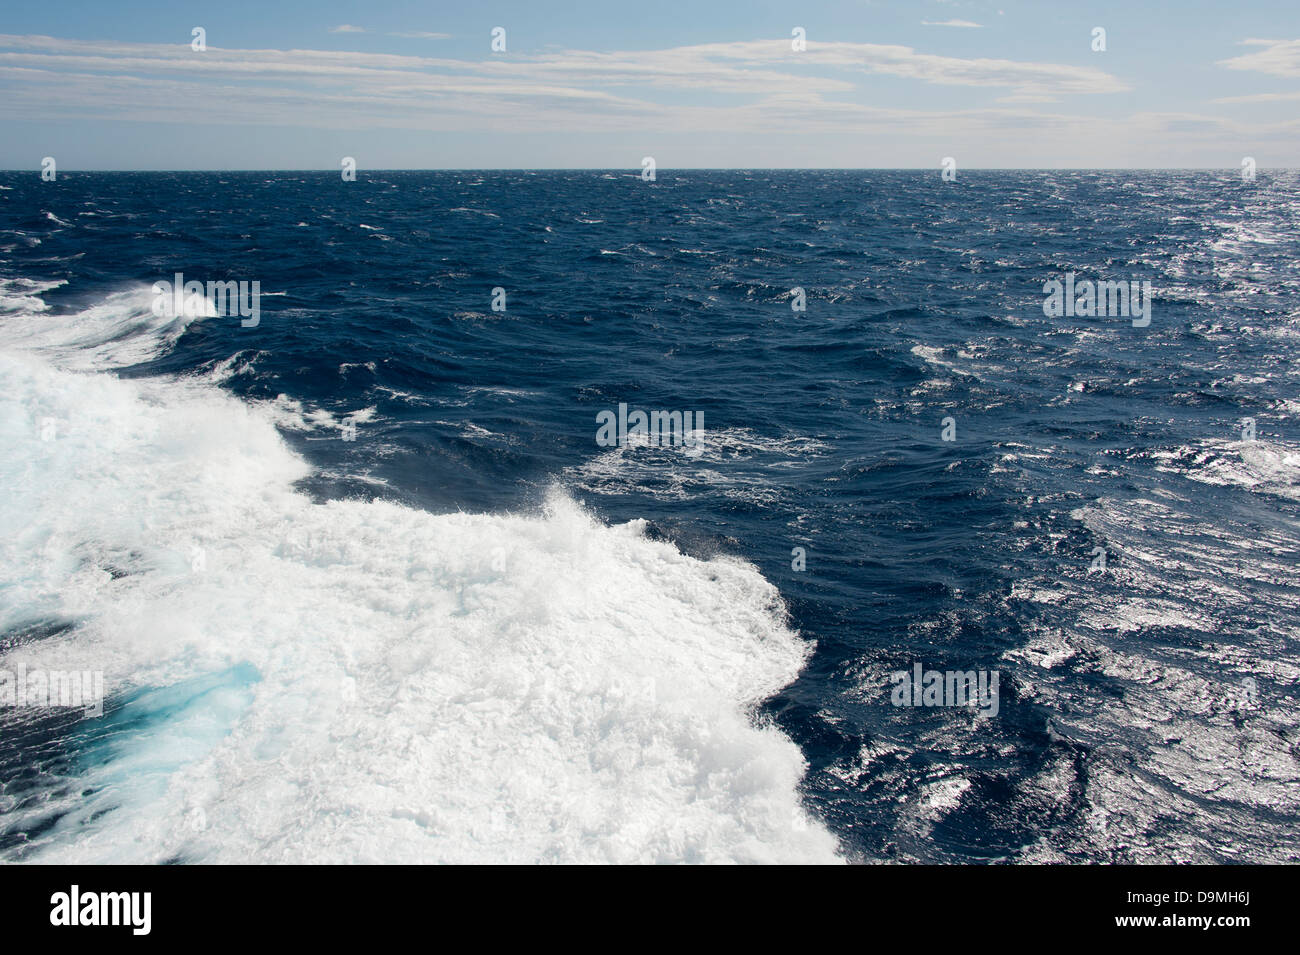 Waves / Mediterranean Sea |Wellen / the Mediterranean Sea - Stock Image